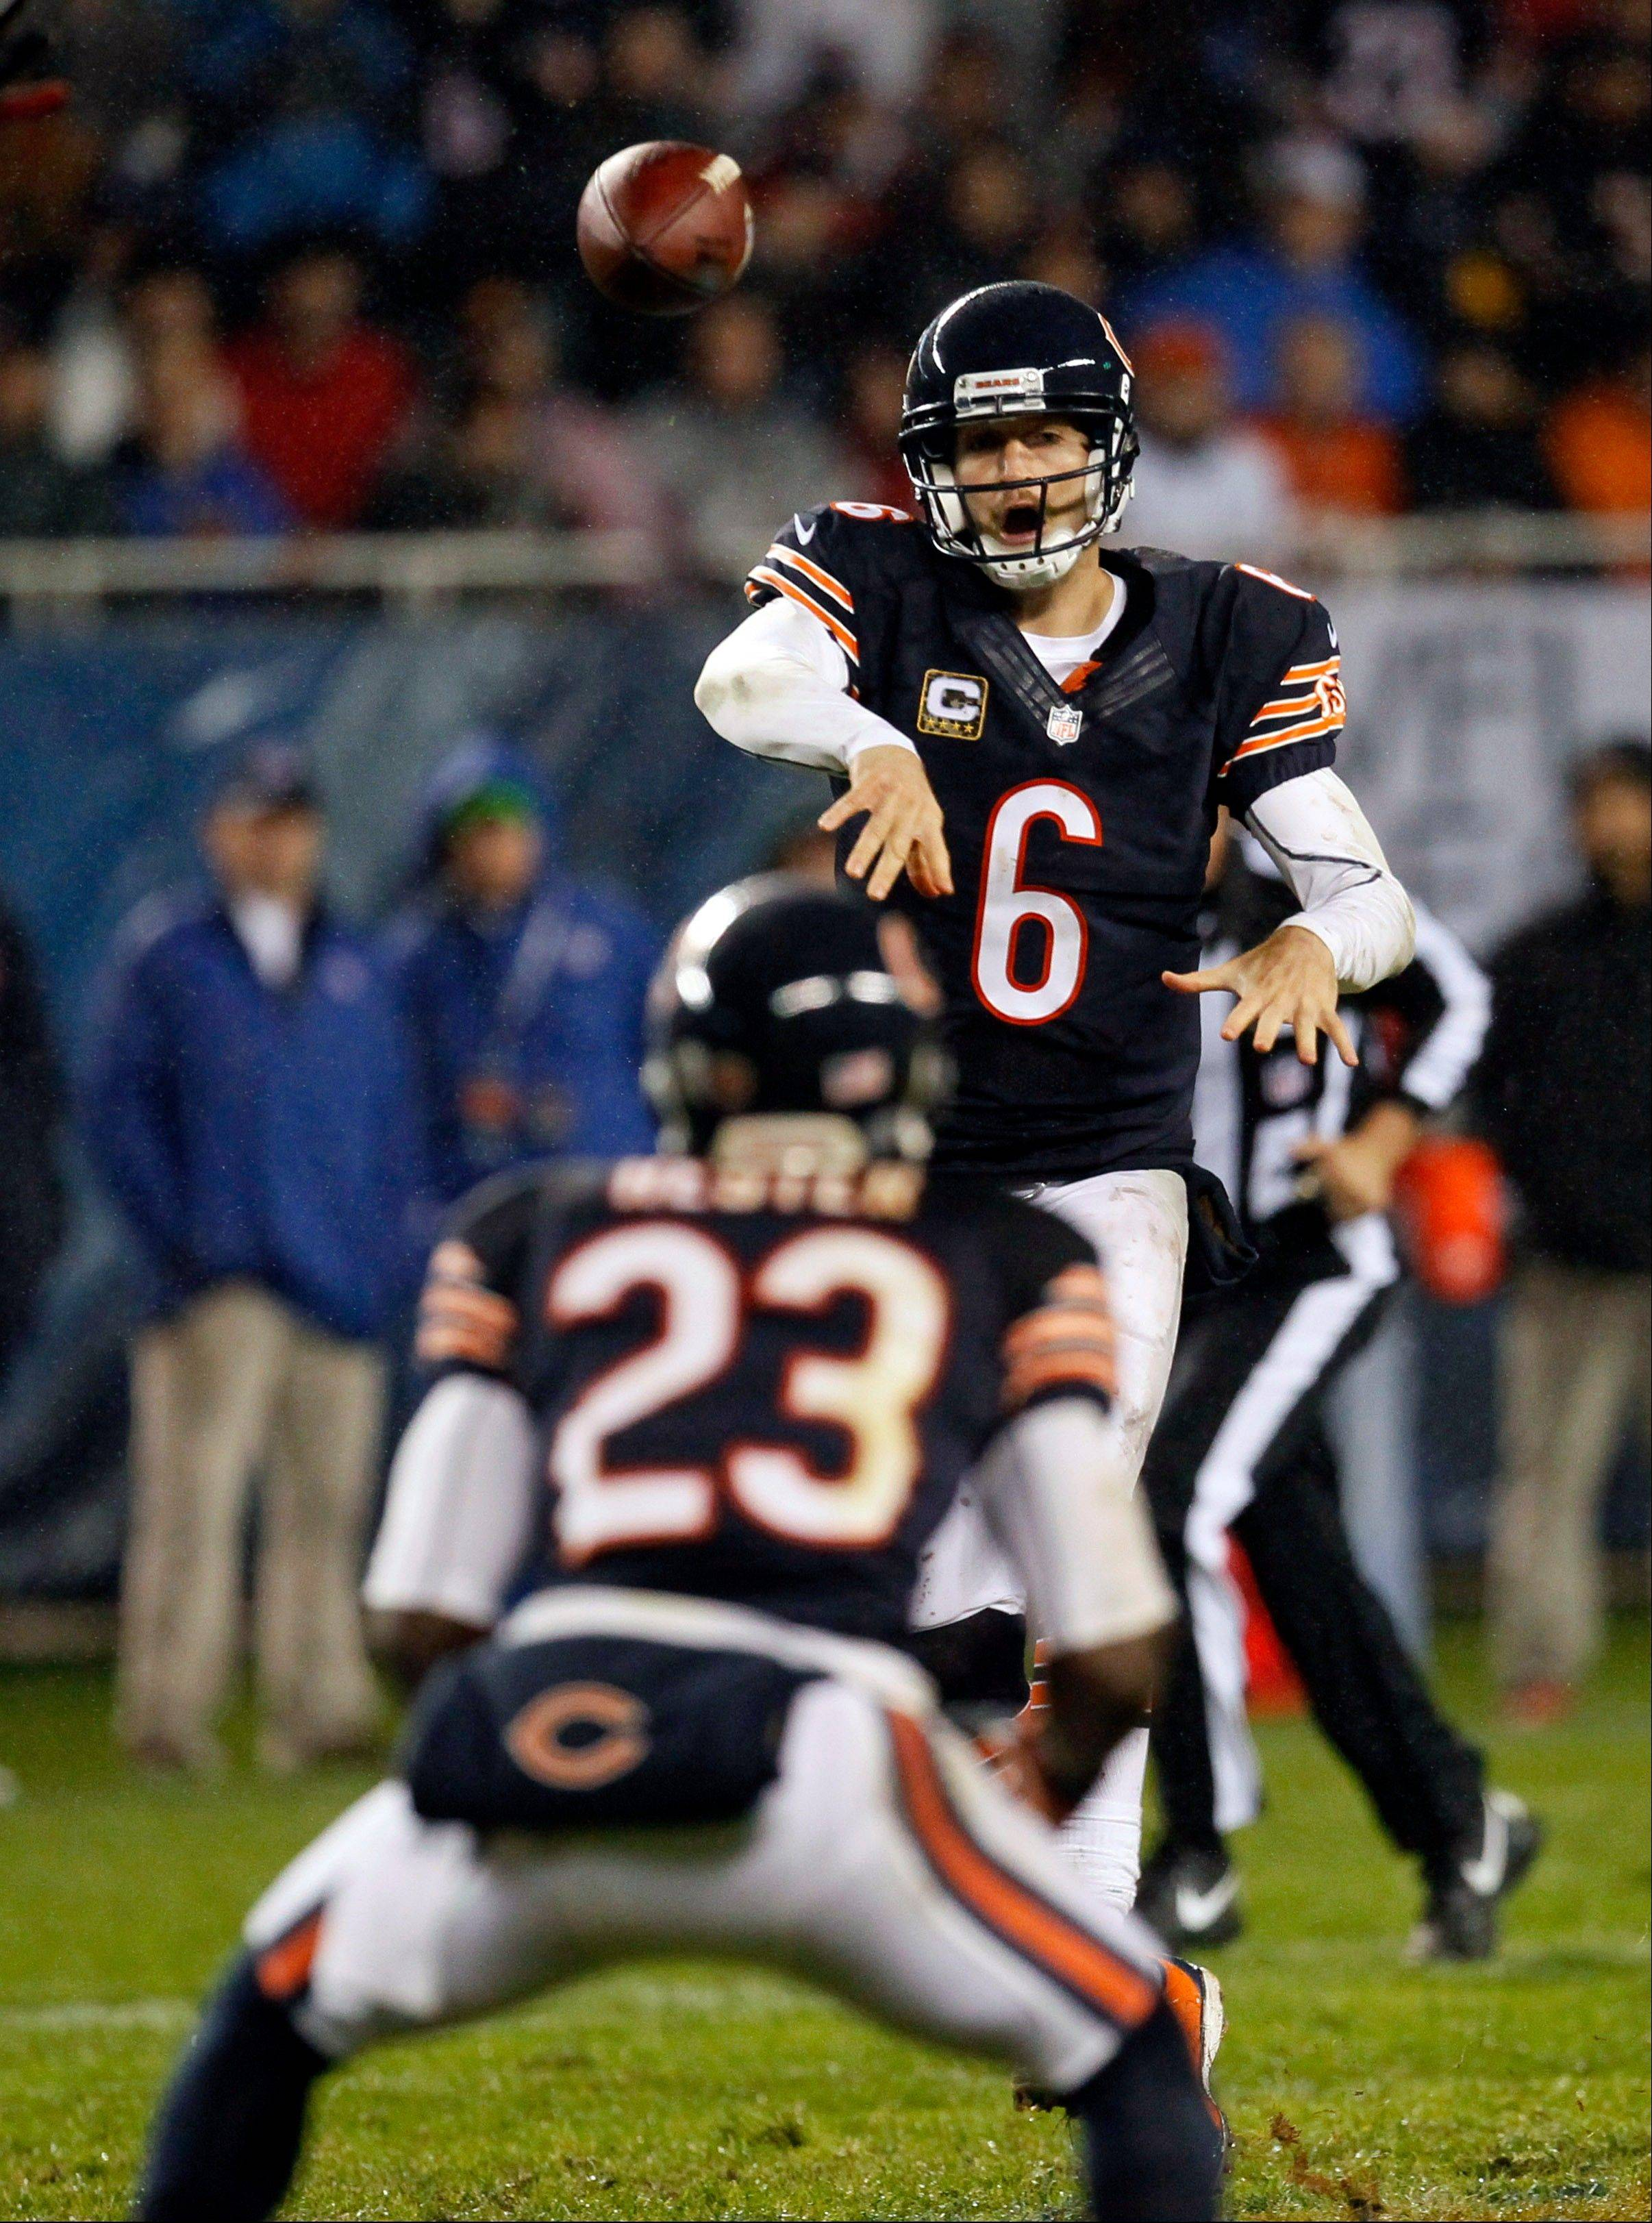 Jay Cutler throws an illegal forward pass to Devin Hester in the first half of the Bears' loss to Houston.